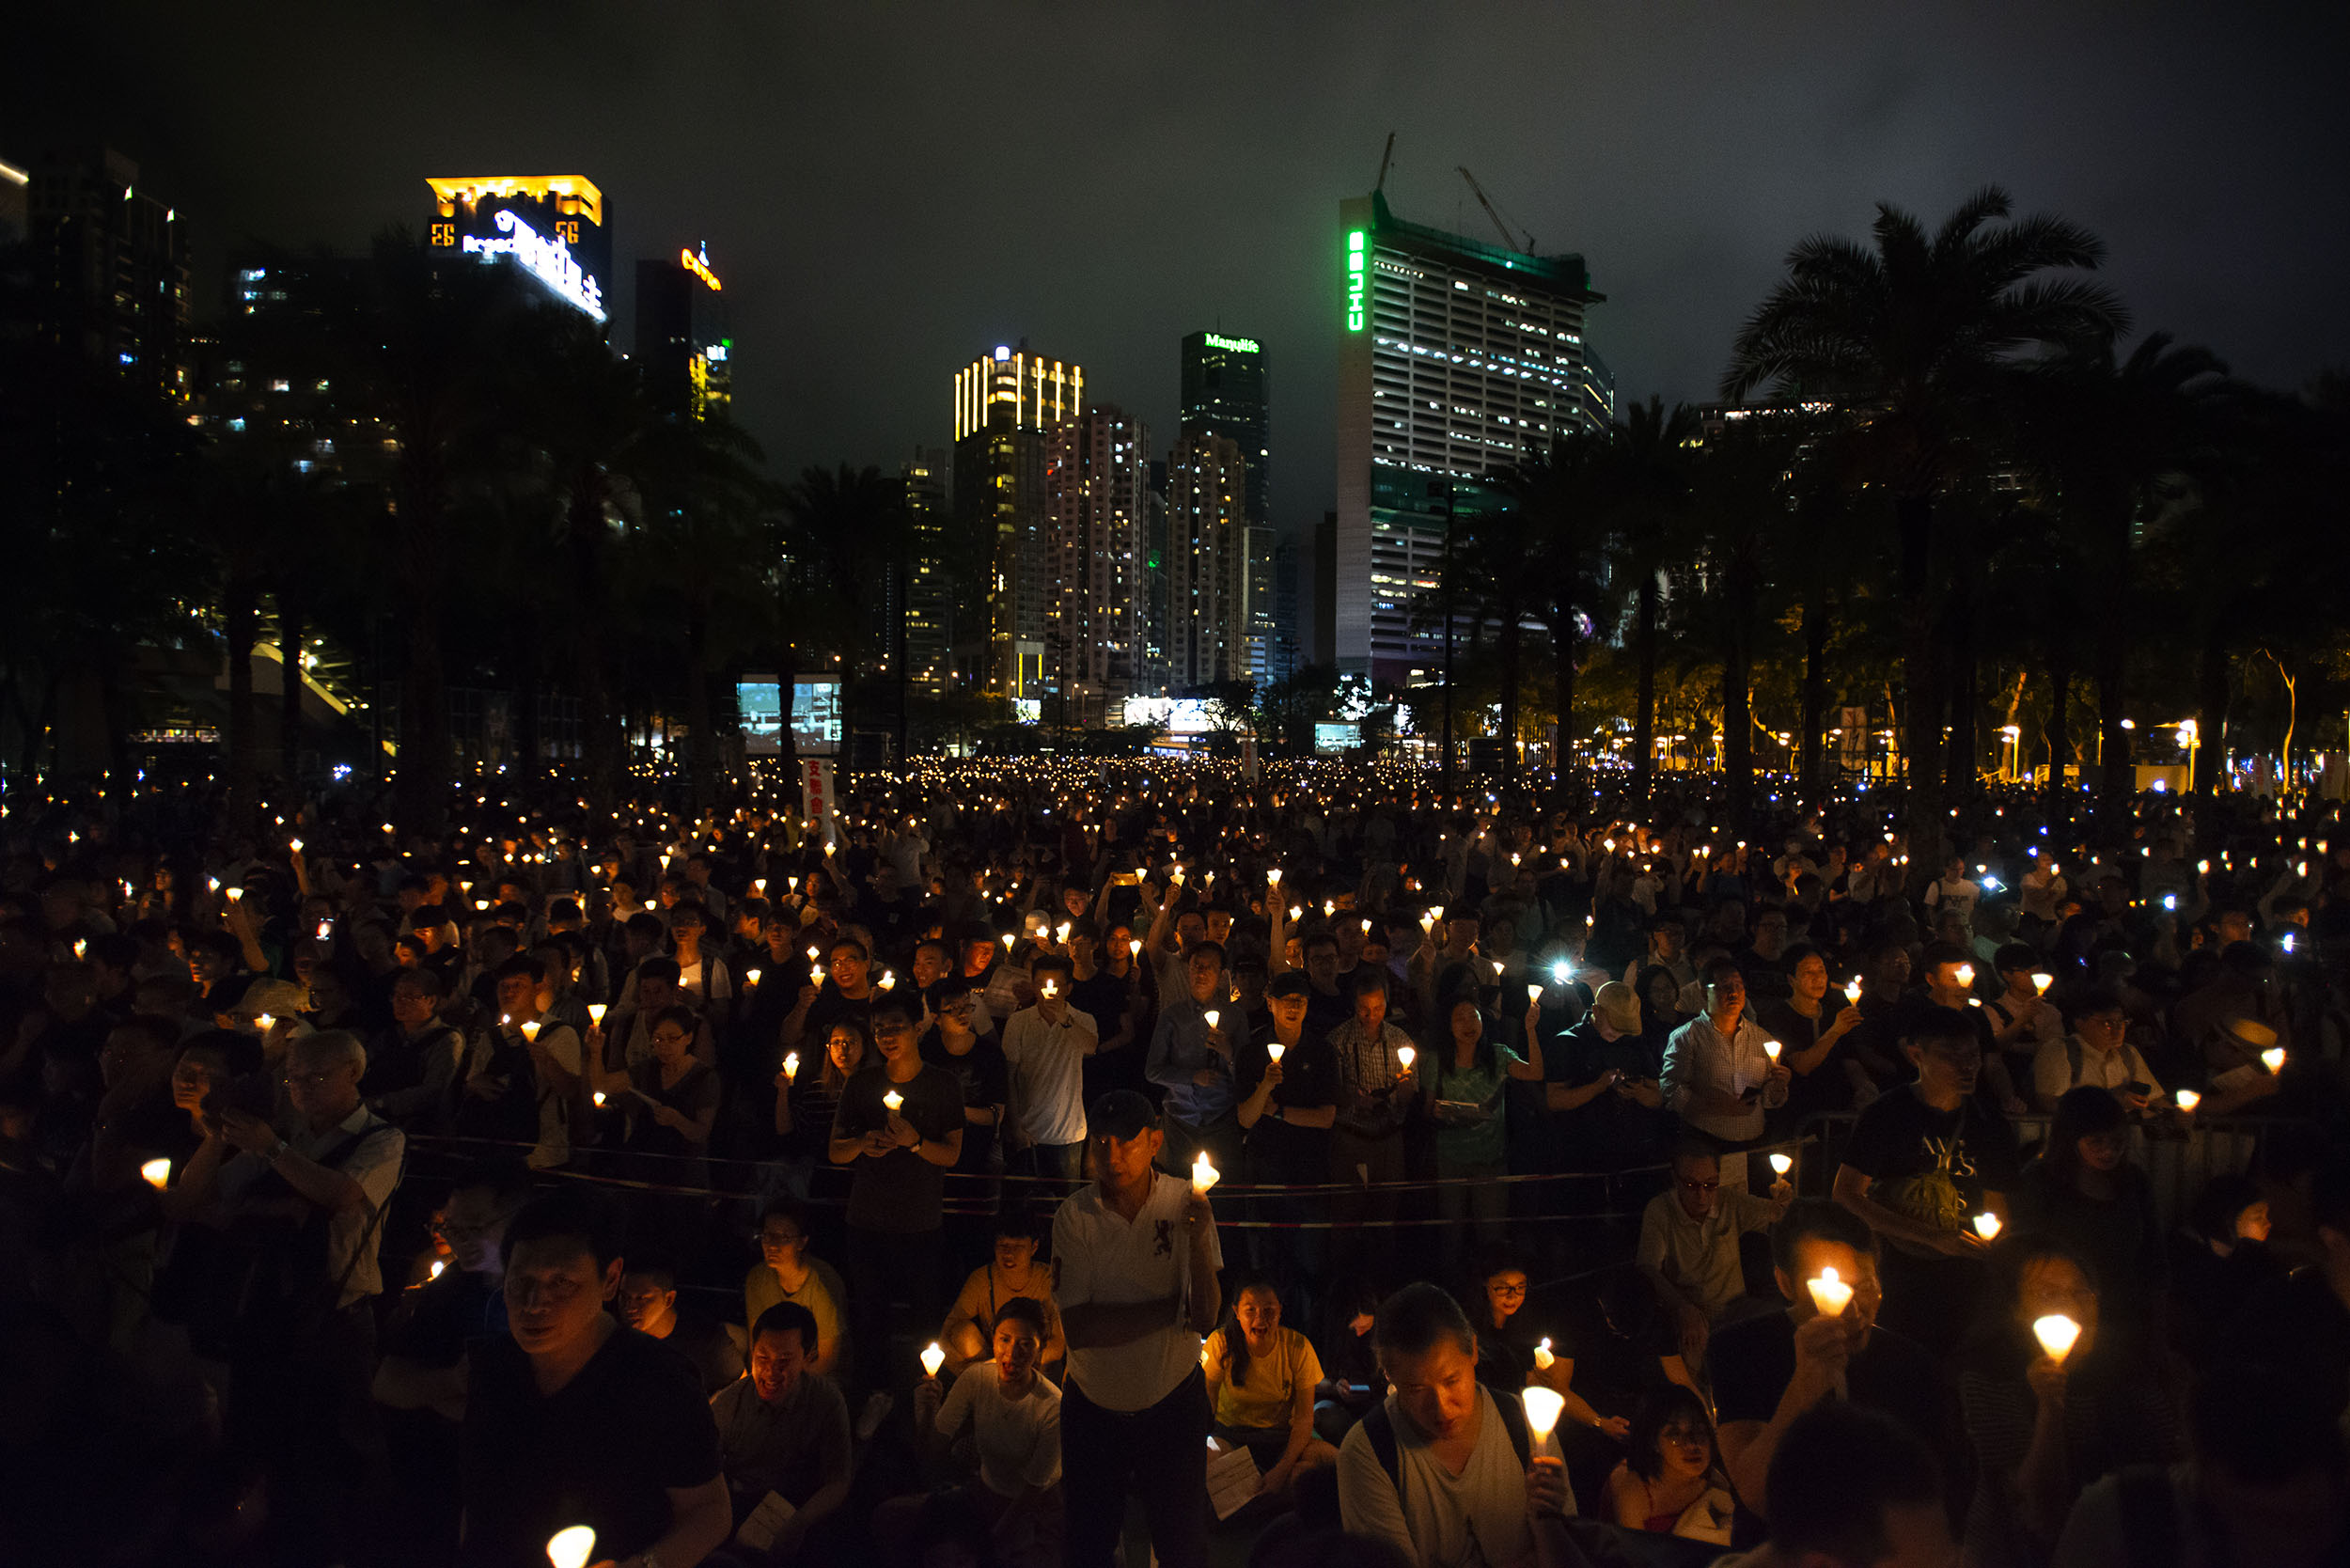 People hold up candles during a vigil in Hong Kong on June 4, 2019, marking 30 years since the massacre at Tiananmen Square in Beijing.